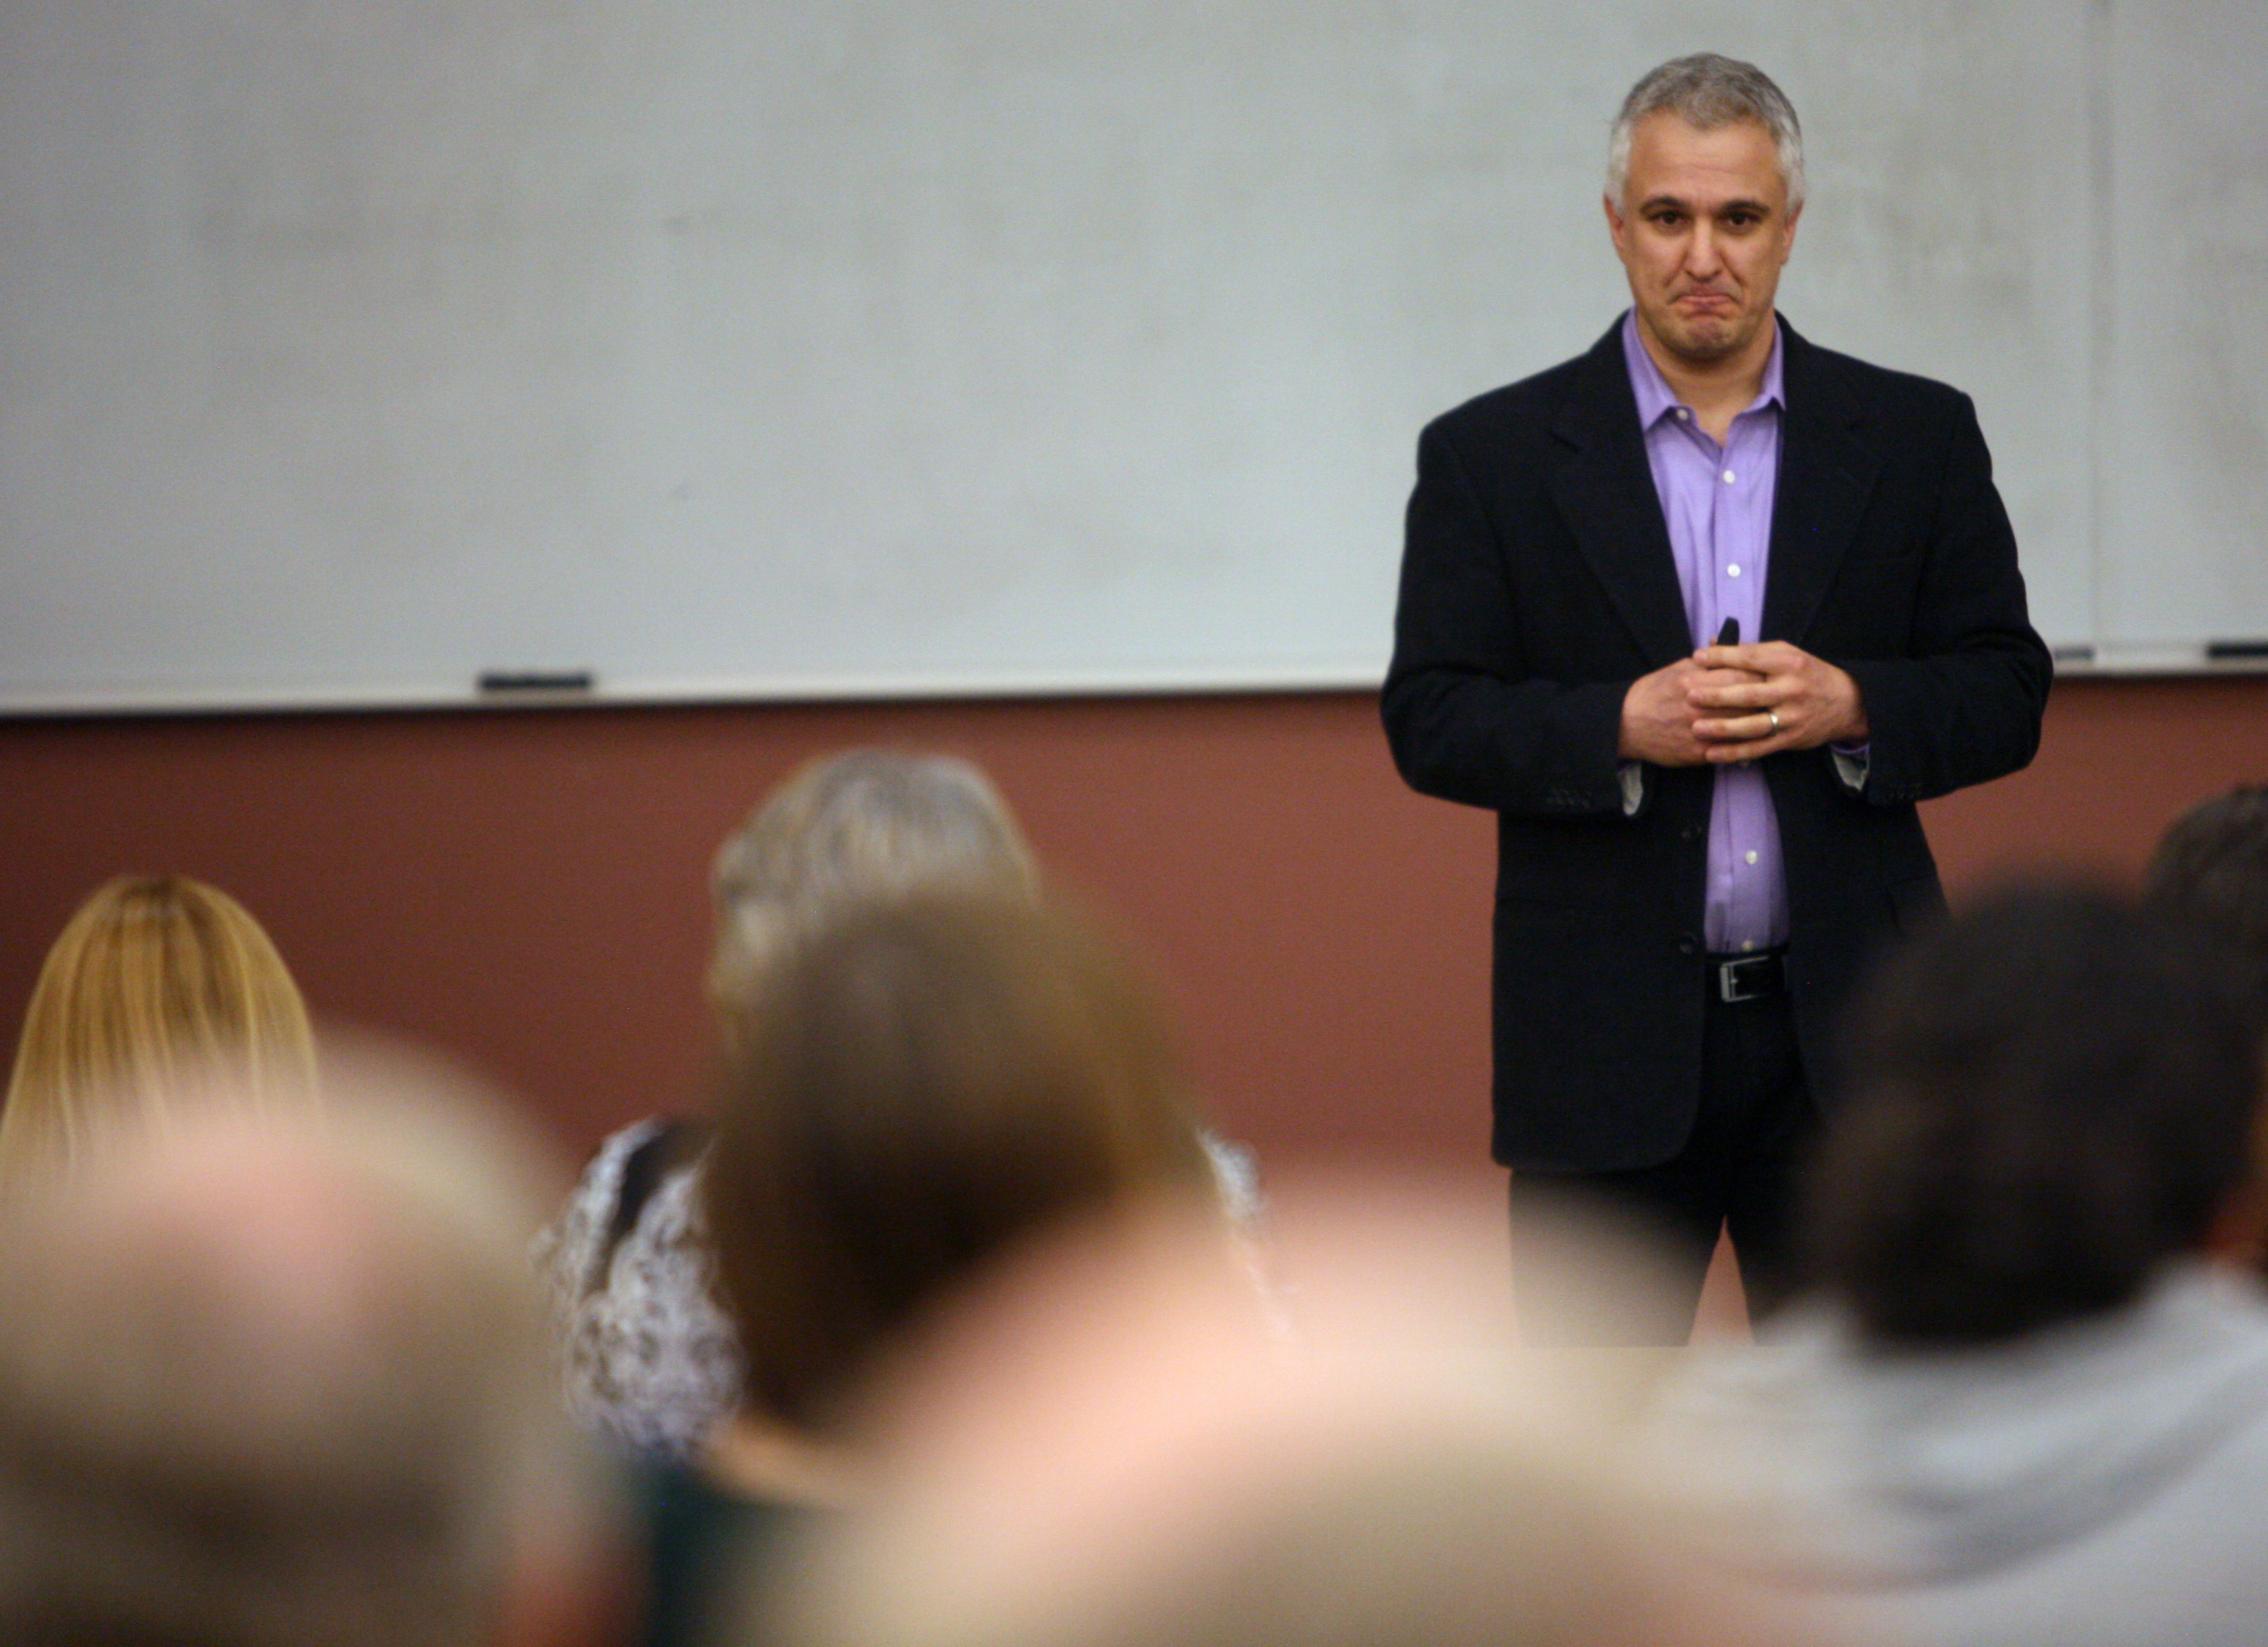 About 120 attend 'Delusions' lecture